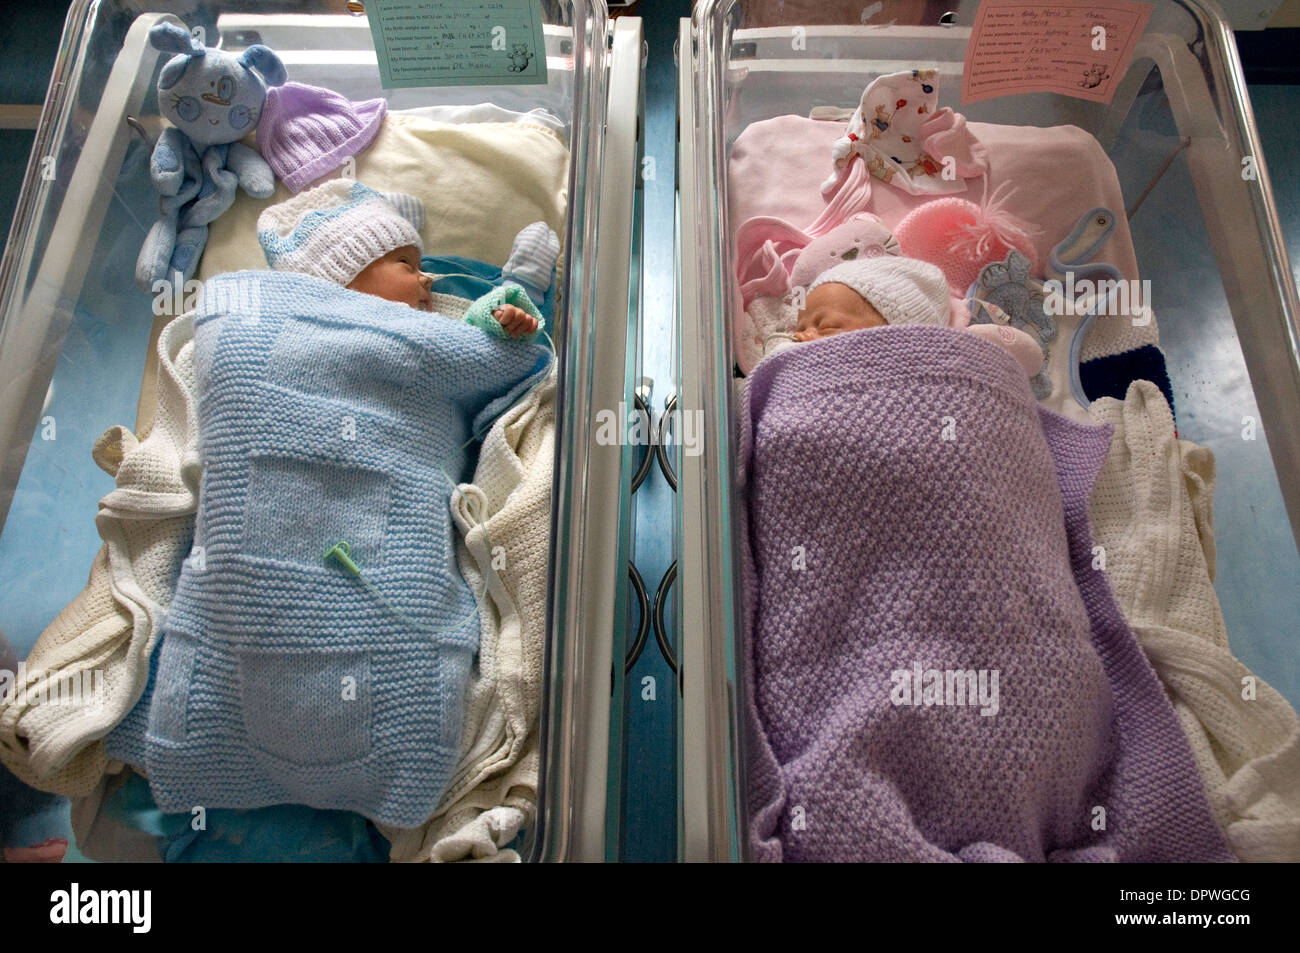 Boy Girl Twins Babies High Resolution Stock Photography And Images Alamy